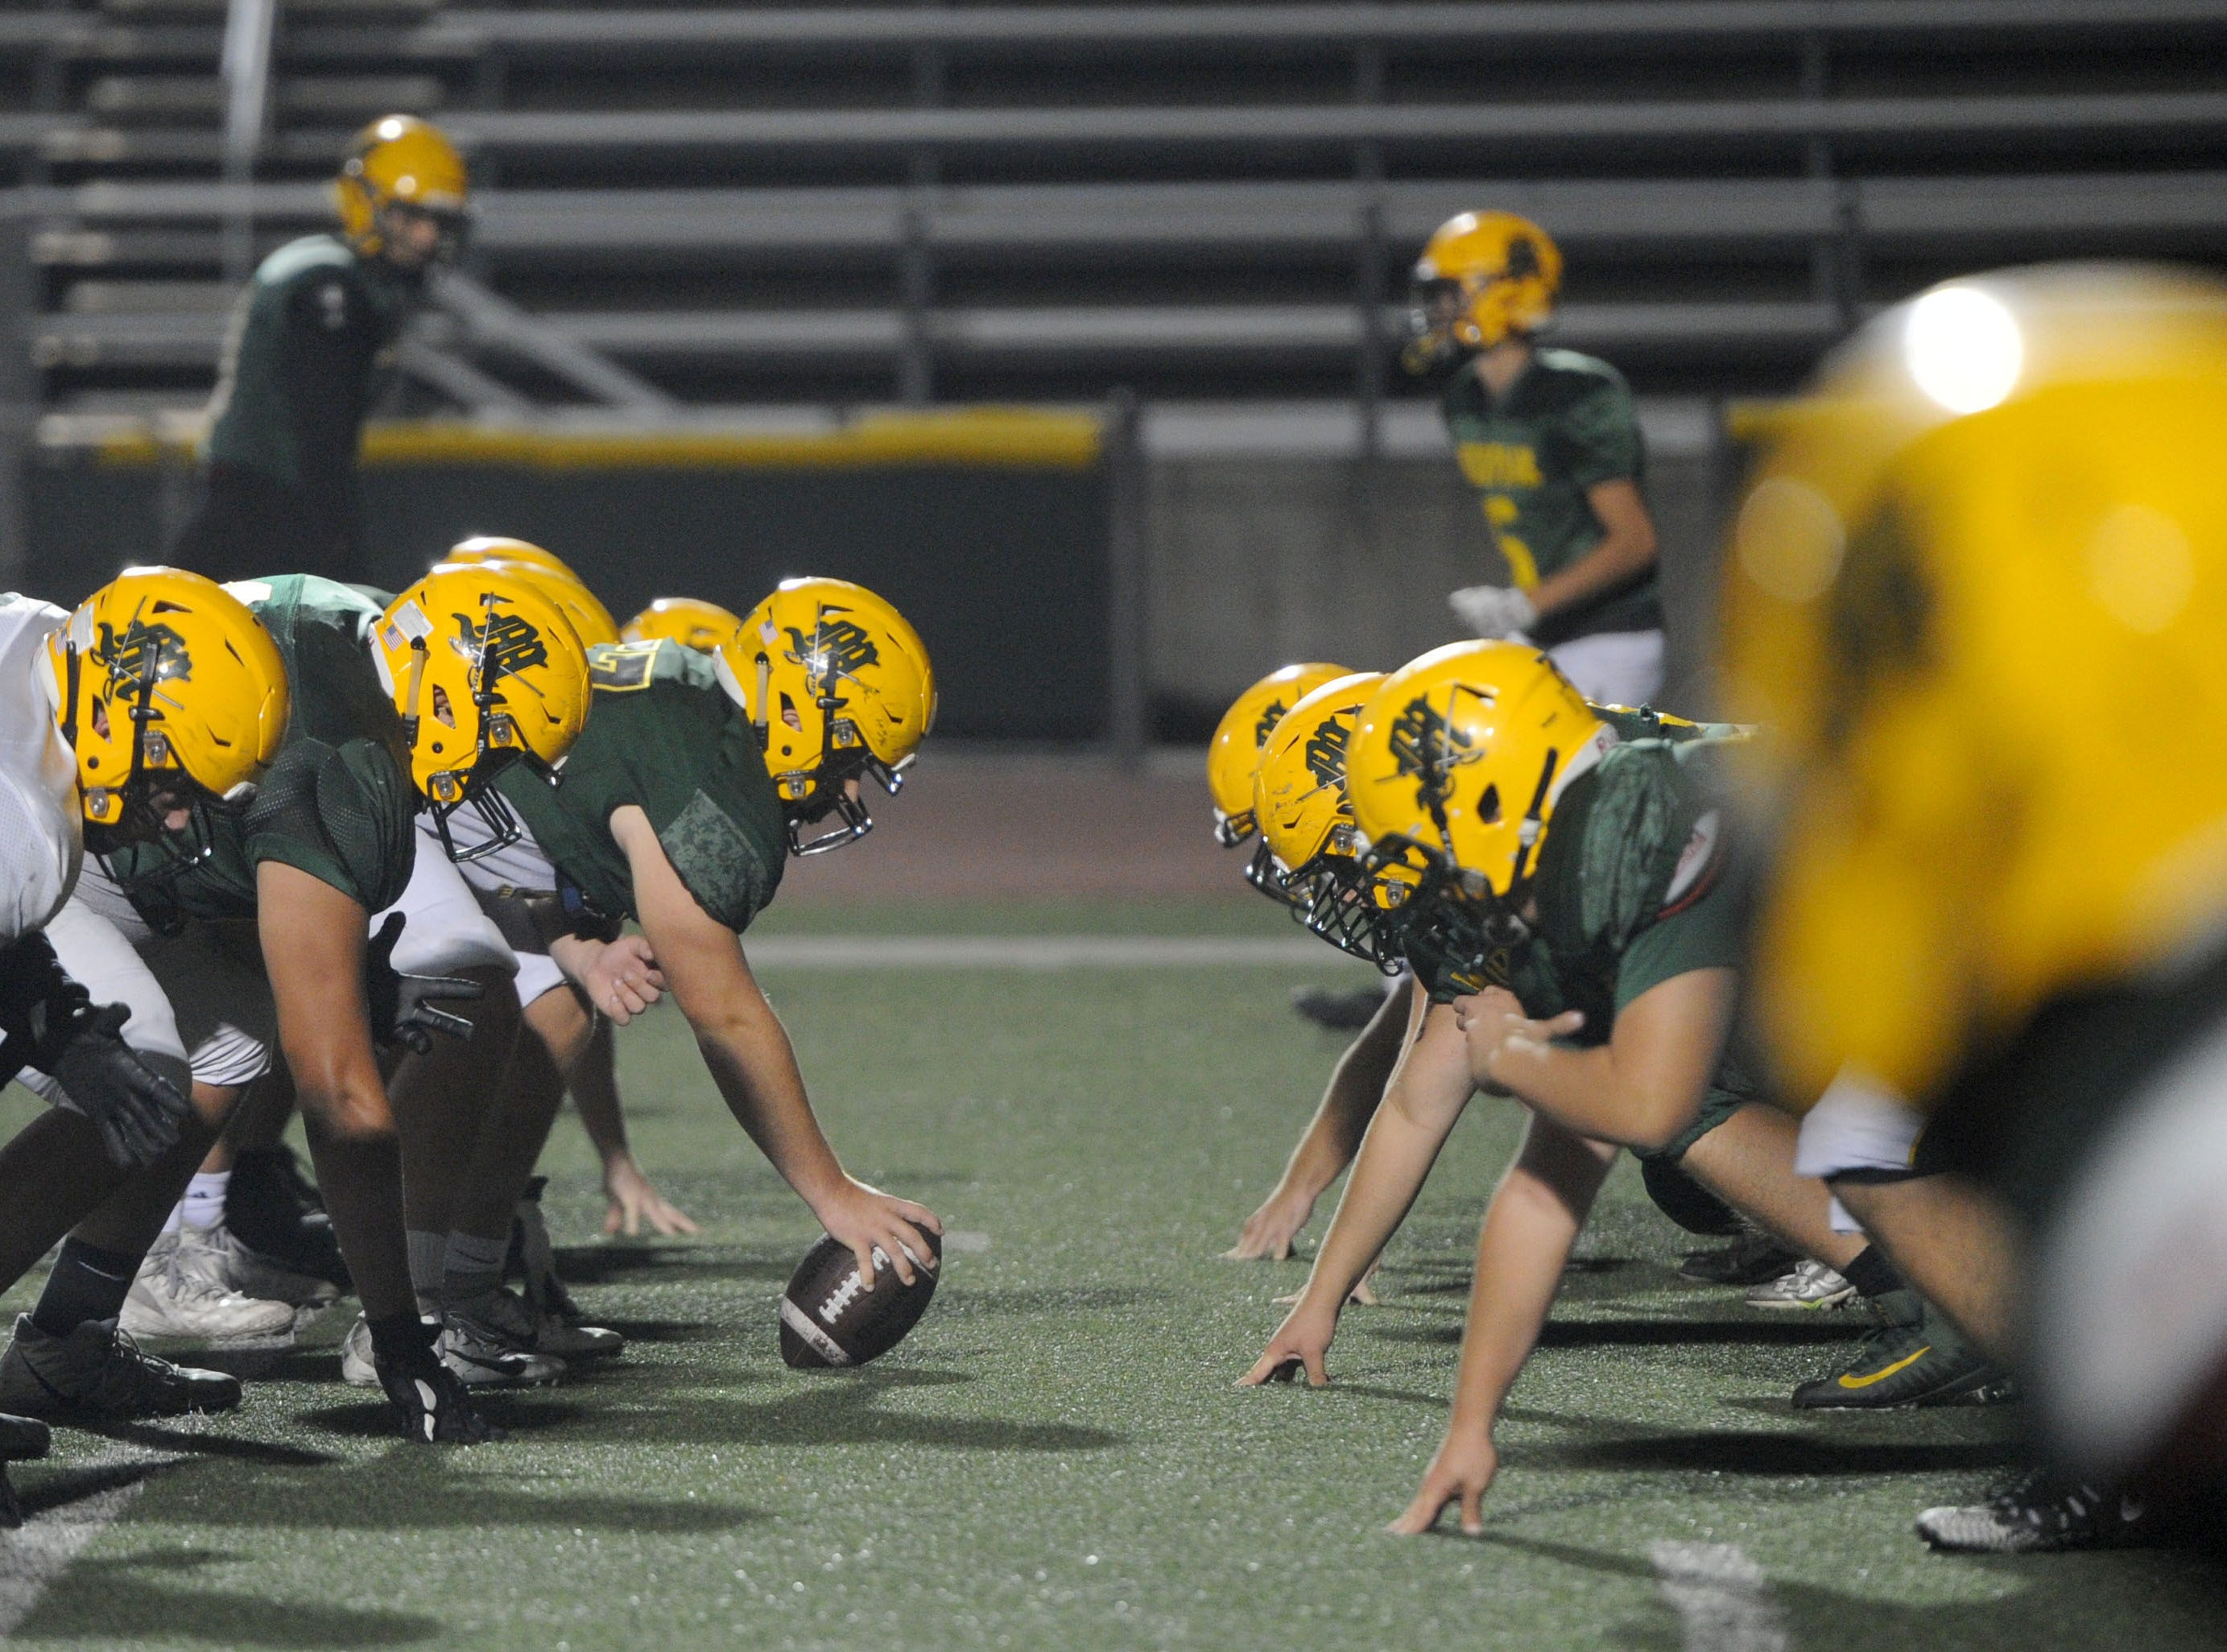 The Moorpark High offensive and defensive lines go head to head during Wednesday's practice. The Musketeers host Sierra Canyon in a Division 3 quarterfinal game Friday night.